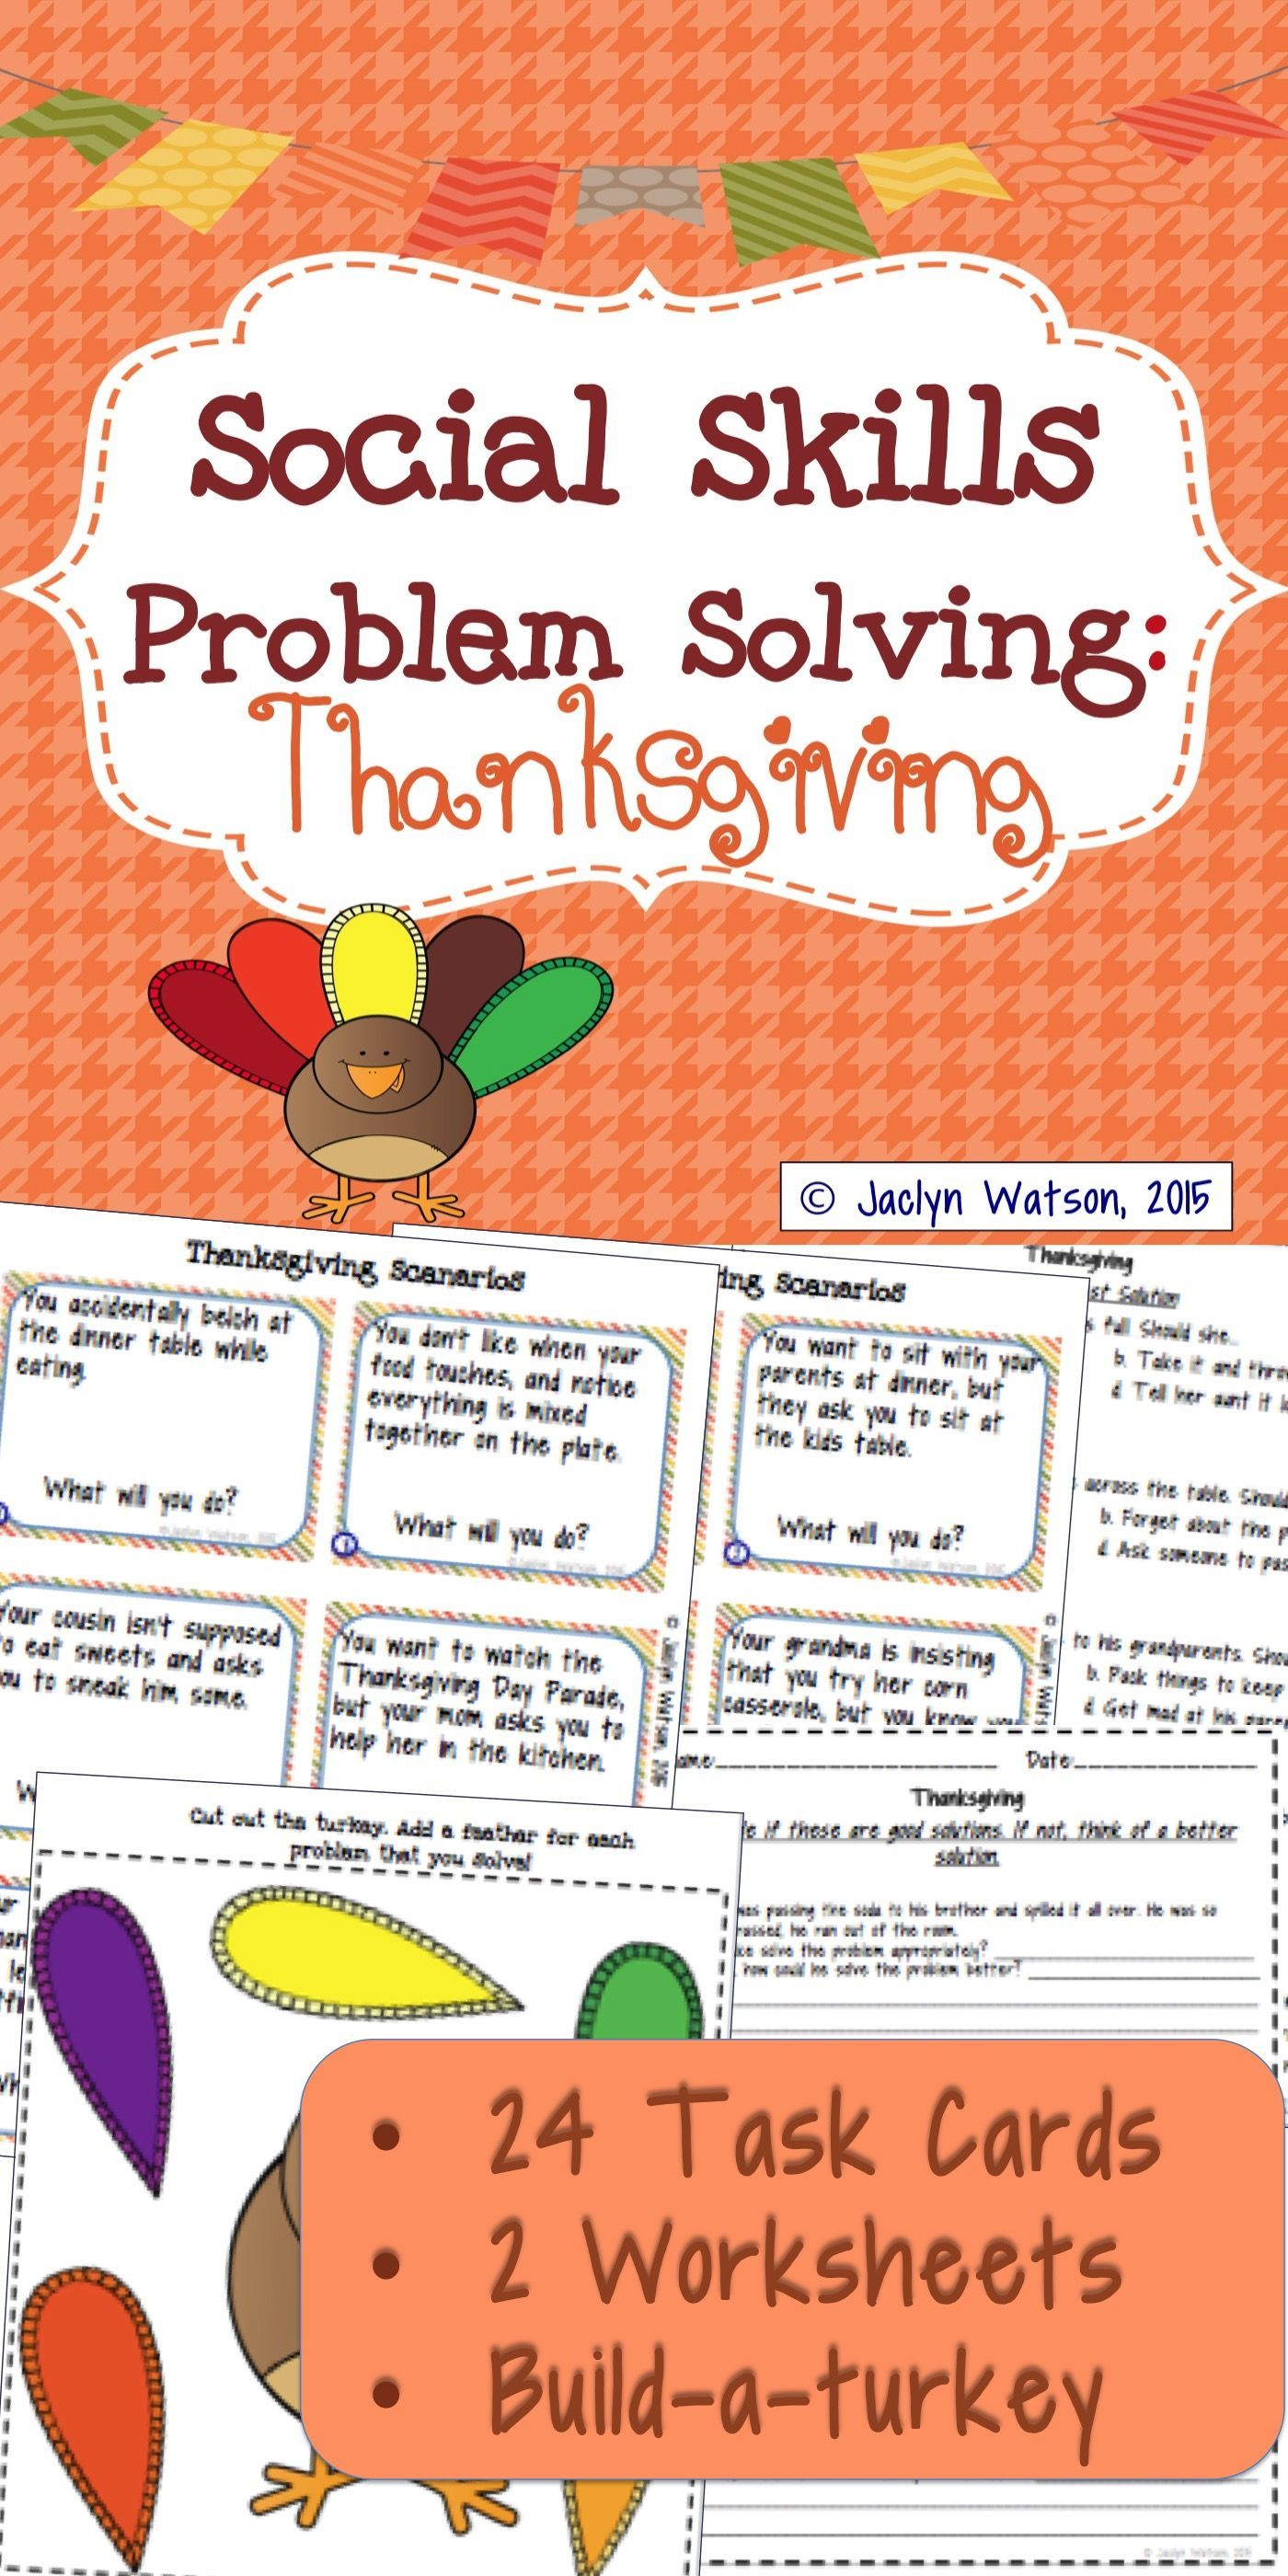 Social Skills Problem Solving Thanksgiving